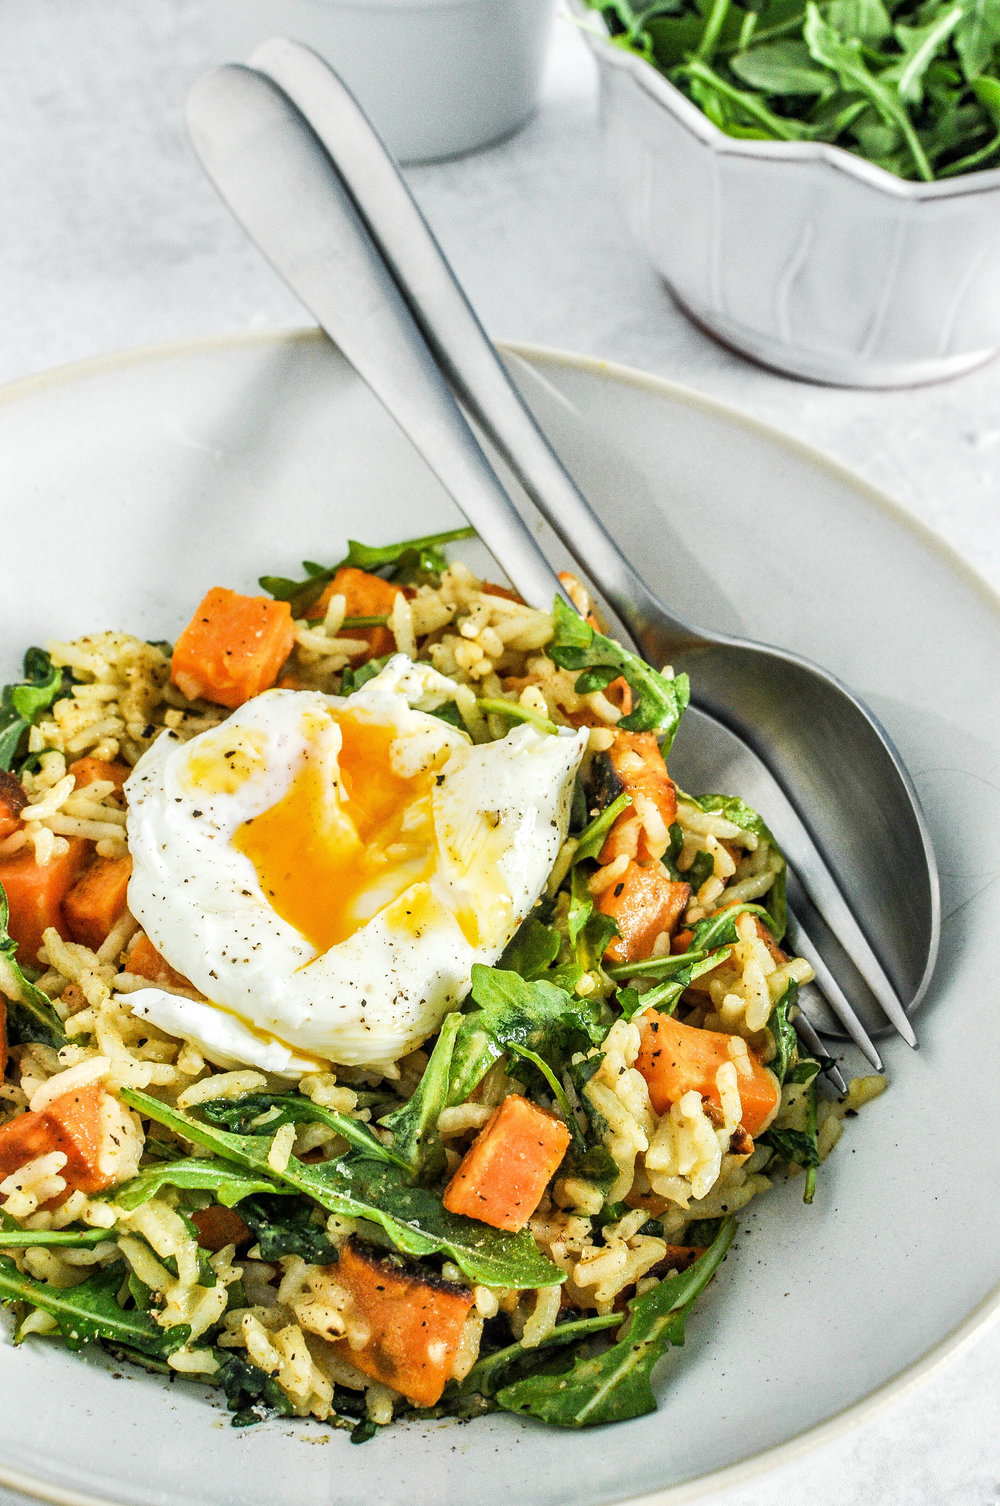 Sweet Potato Green Curry Bowl. This rice bowl with sweet potatoes, green curry, arugula, and a poached egg is a delicious brunch or lunch.